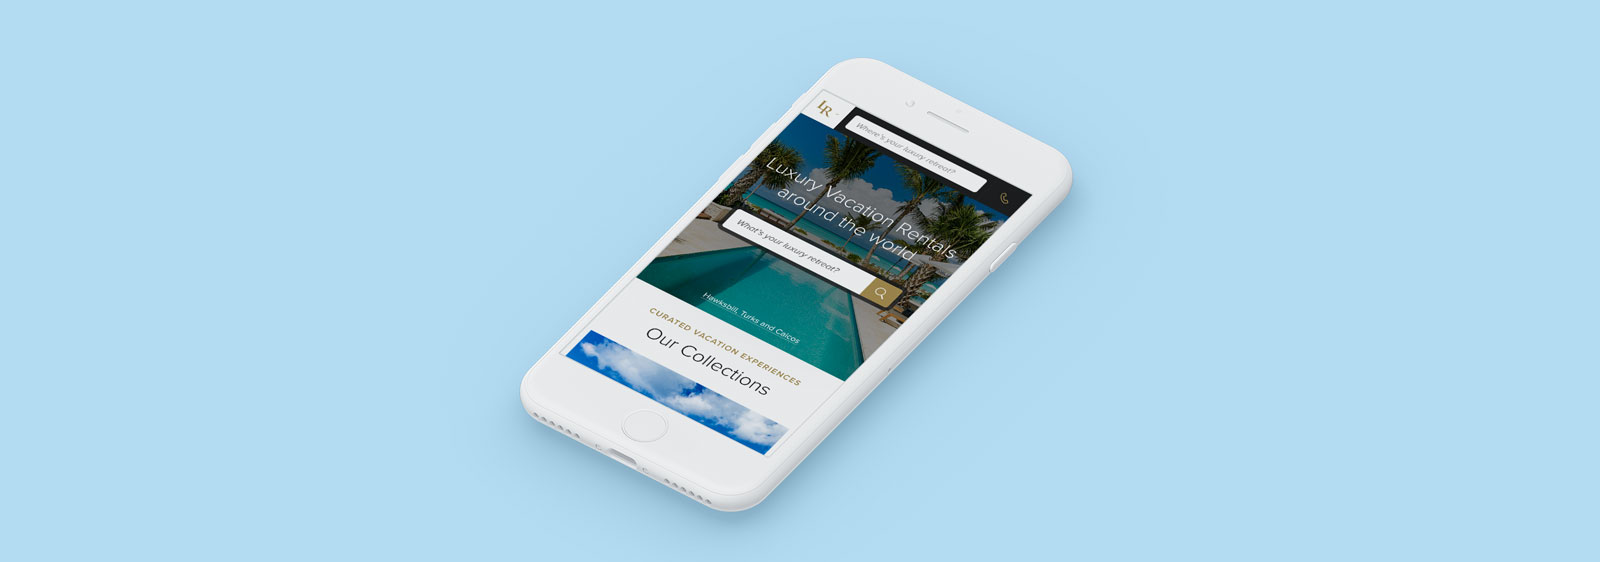 Luxury Retreats mobile website design by Noisy Ghost Co.